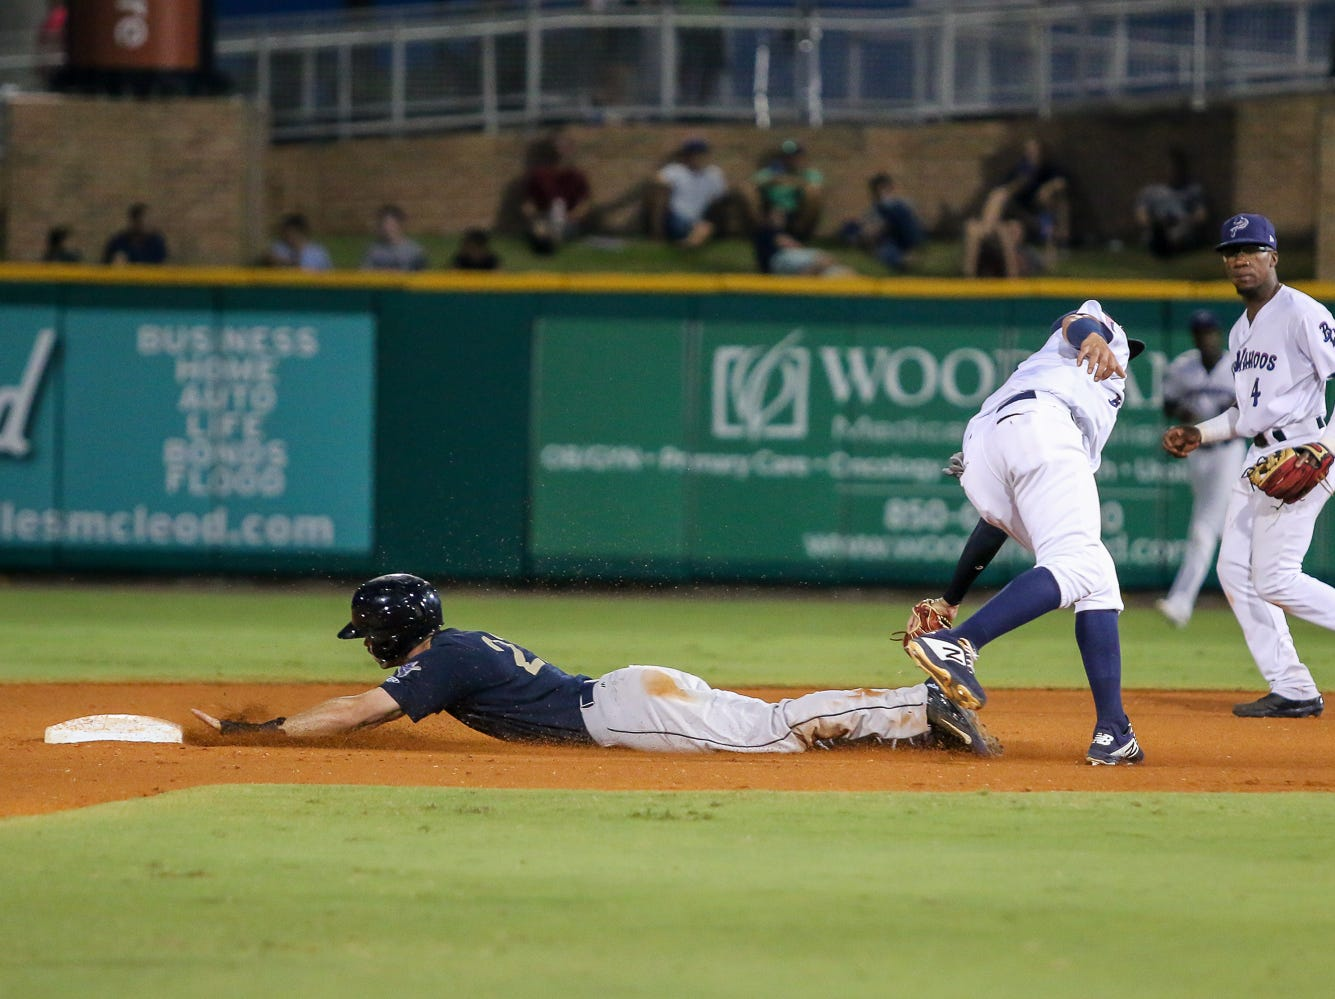 Pensacola shortstop Luis Gonzalez (19) can't get the throw from catcher Chris Oakey down in time to keep Mobile's Brandon Sandoval (21) from stealing second base during the Blue Wahoos' last home game of the regular season on Tuesday, August 28, 2018.